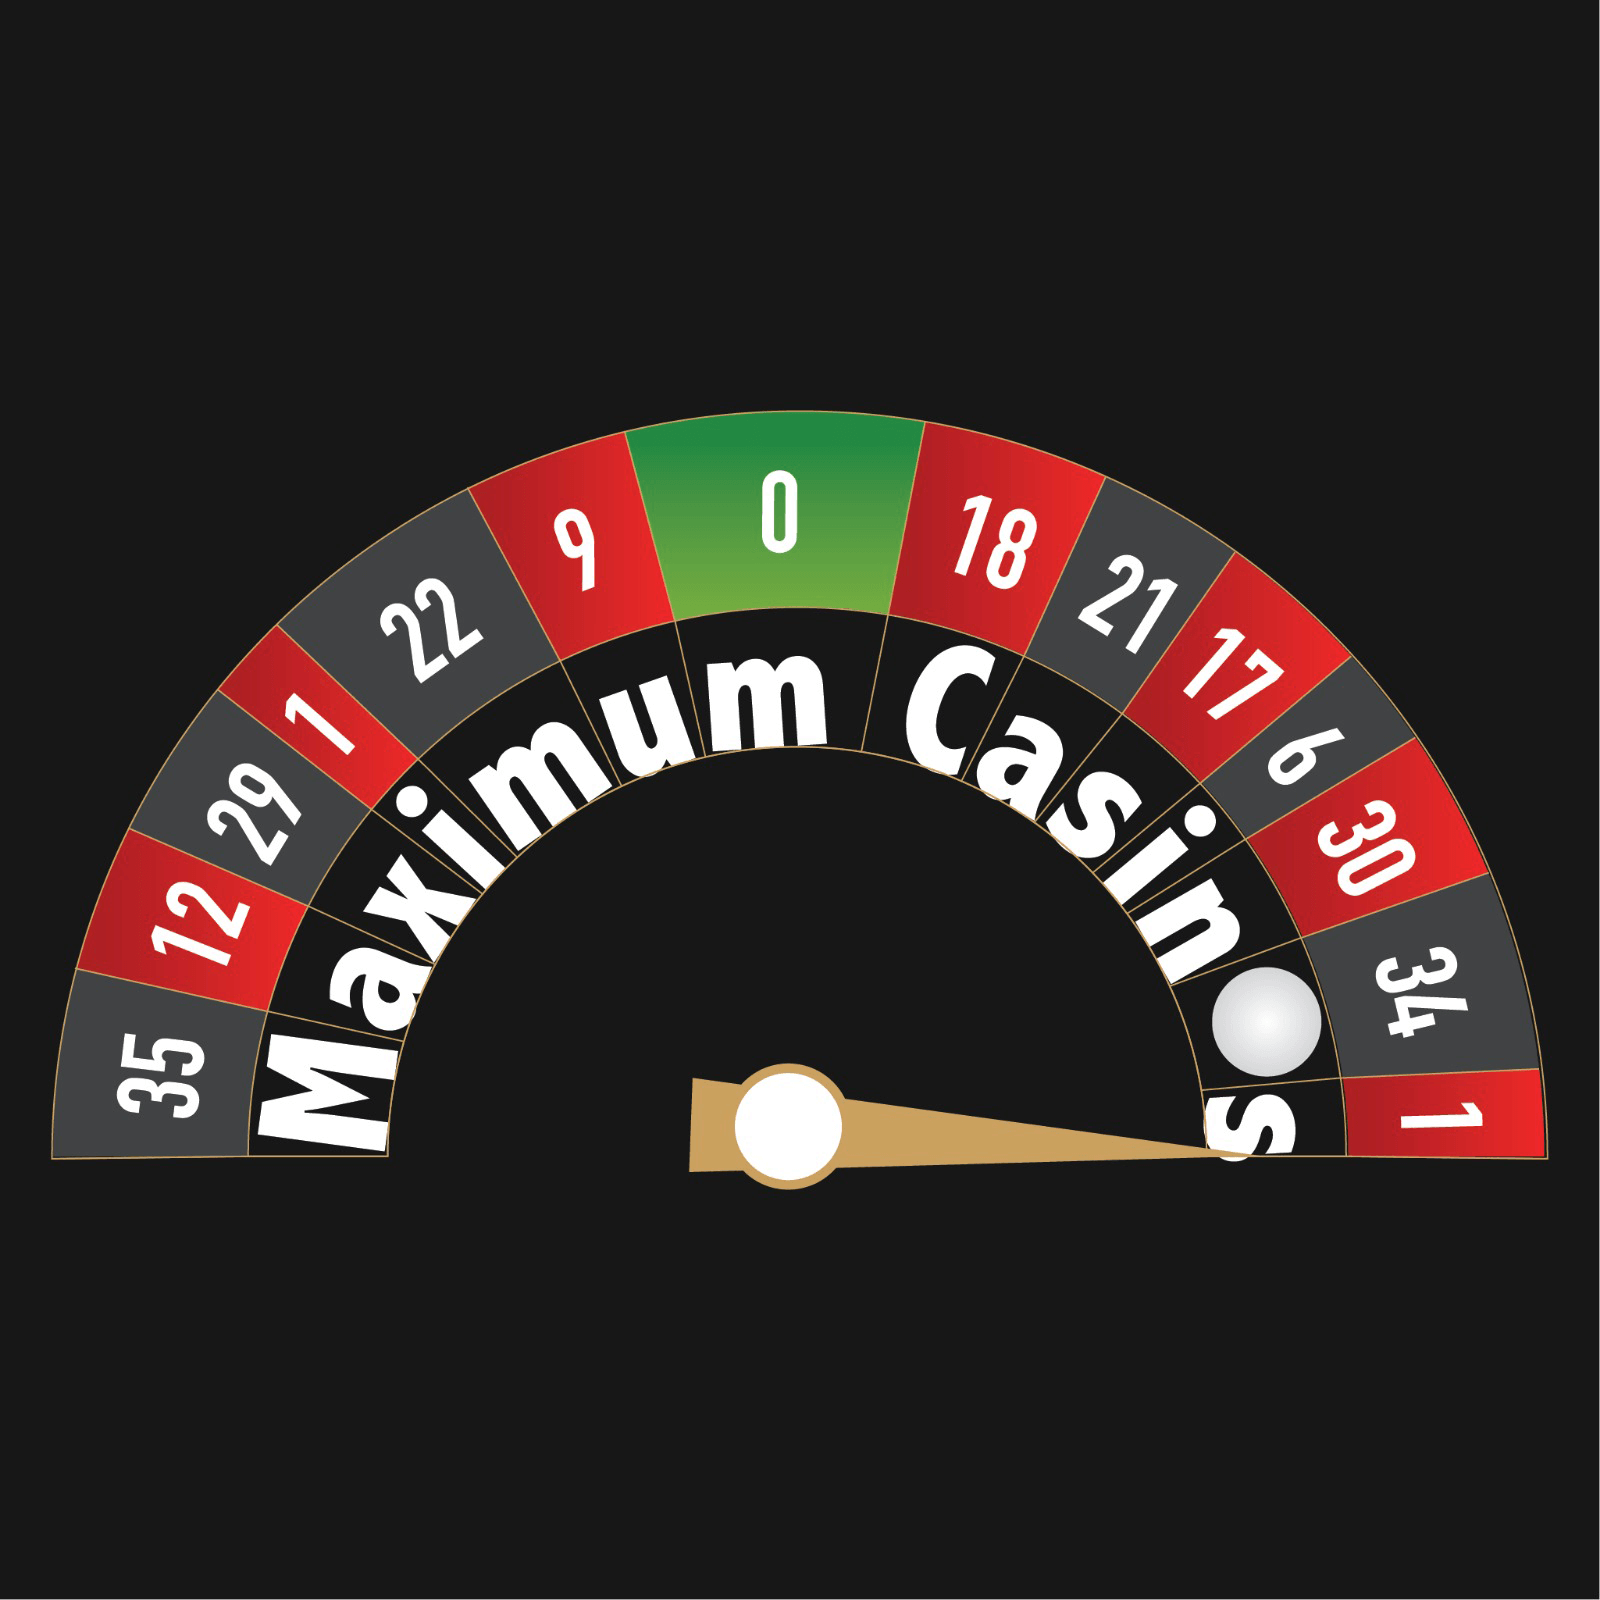 https://maximumcasinos.com/non-gamstop-casinos/